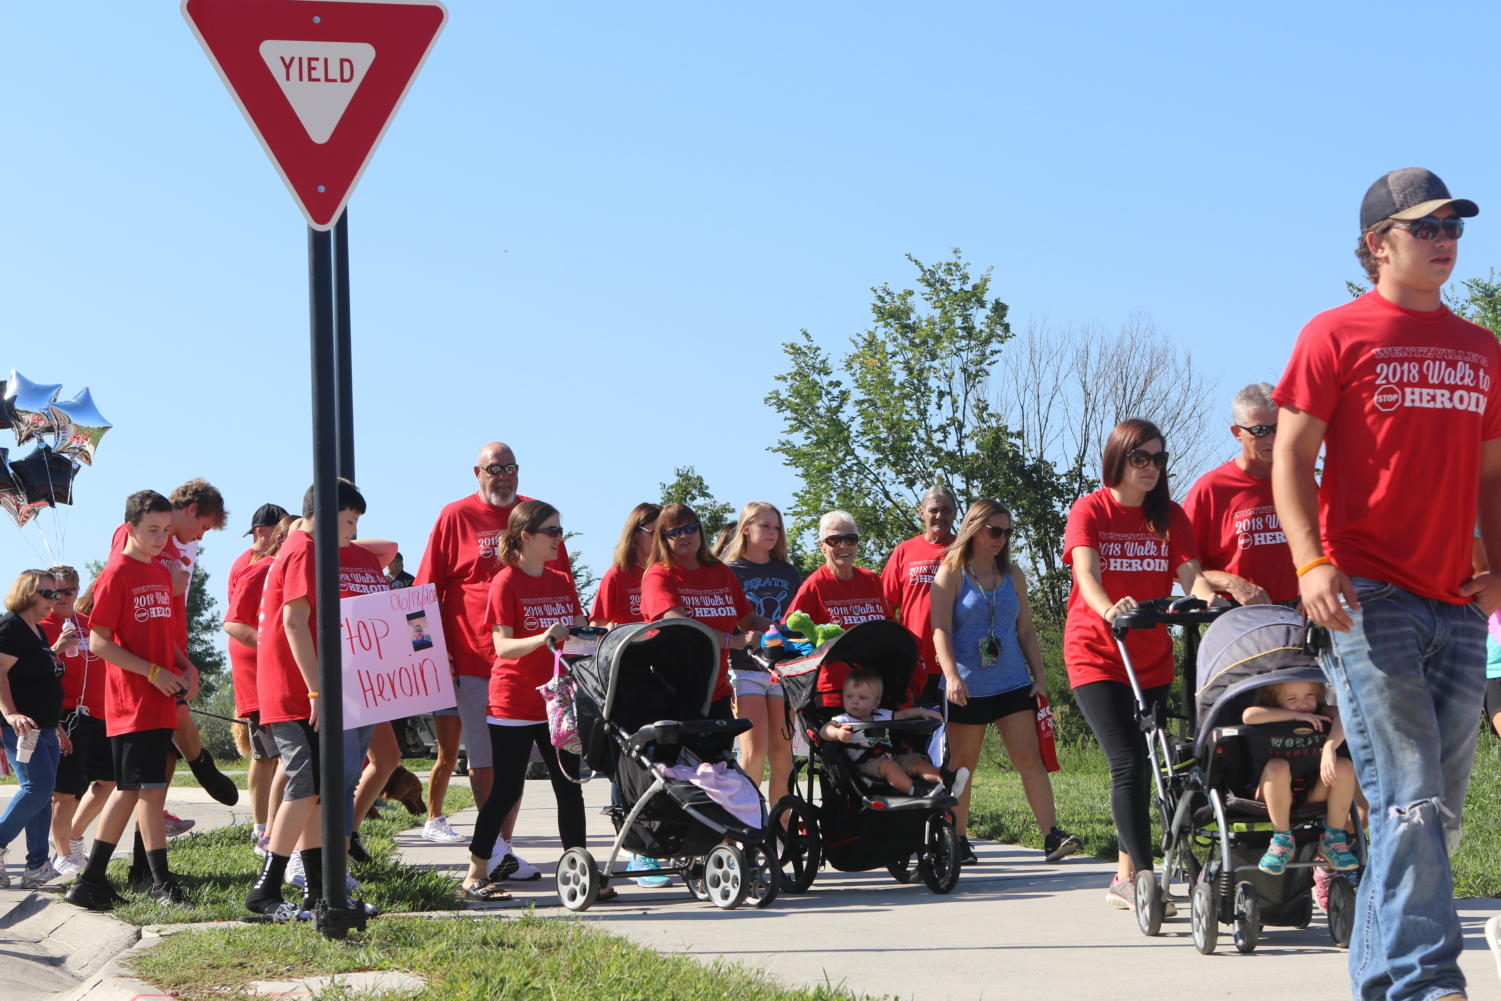 More than 500 people gathered at Holt High School for the Walk to Stop Heroin.